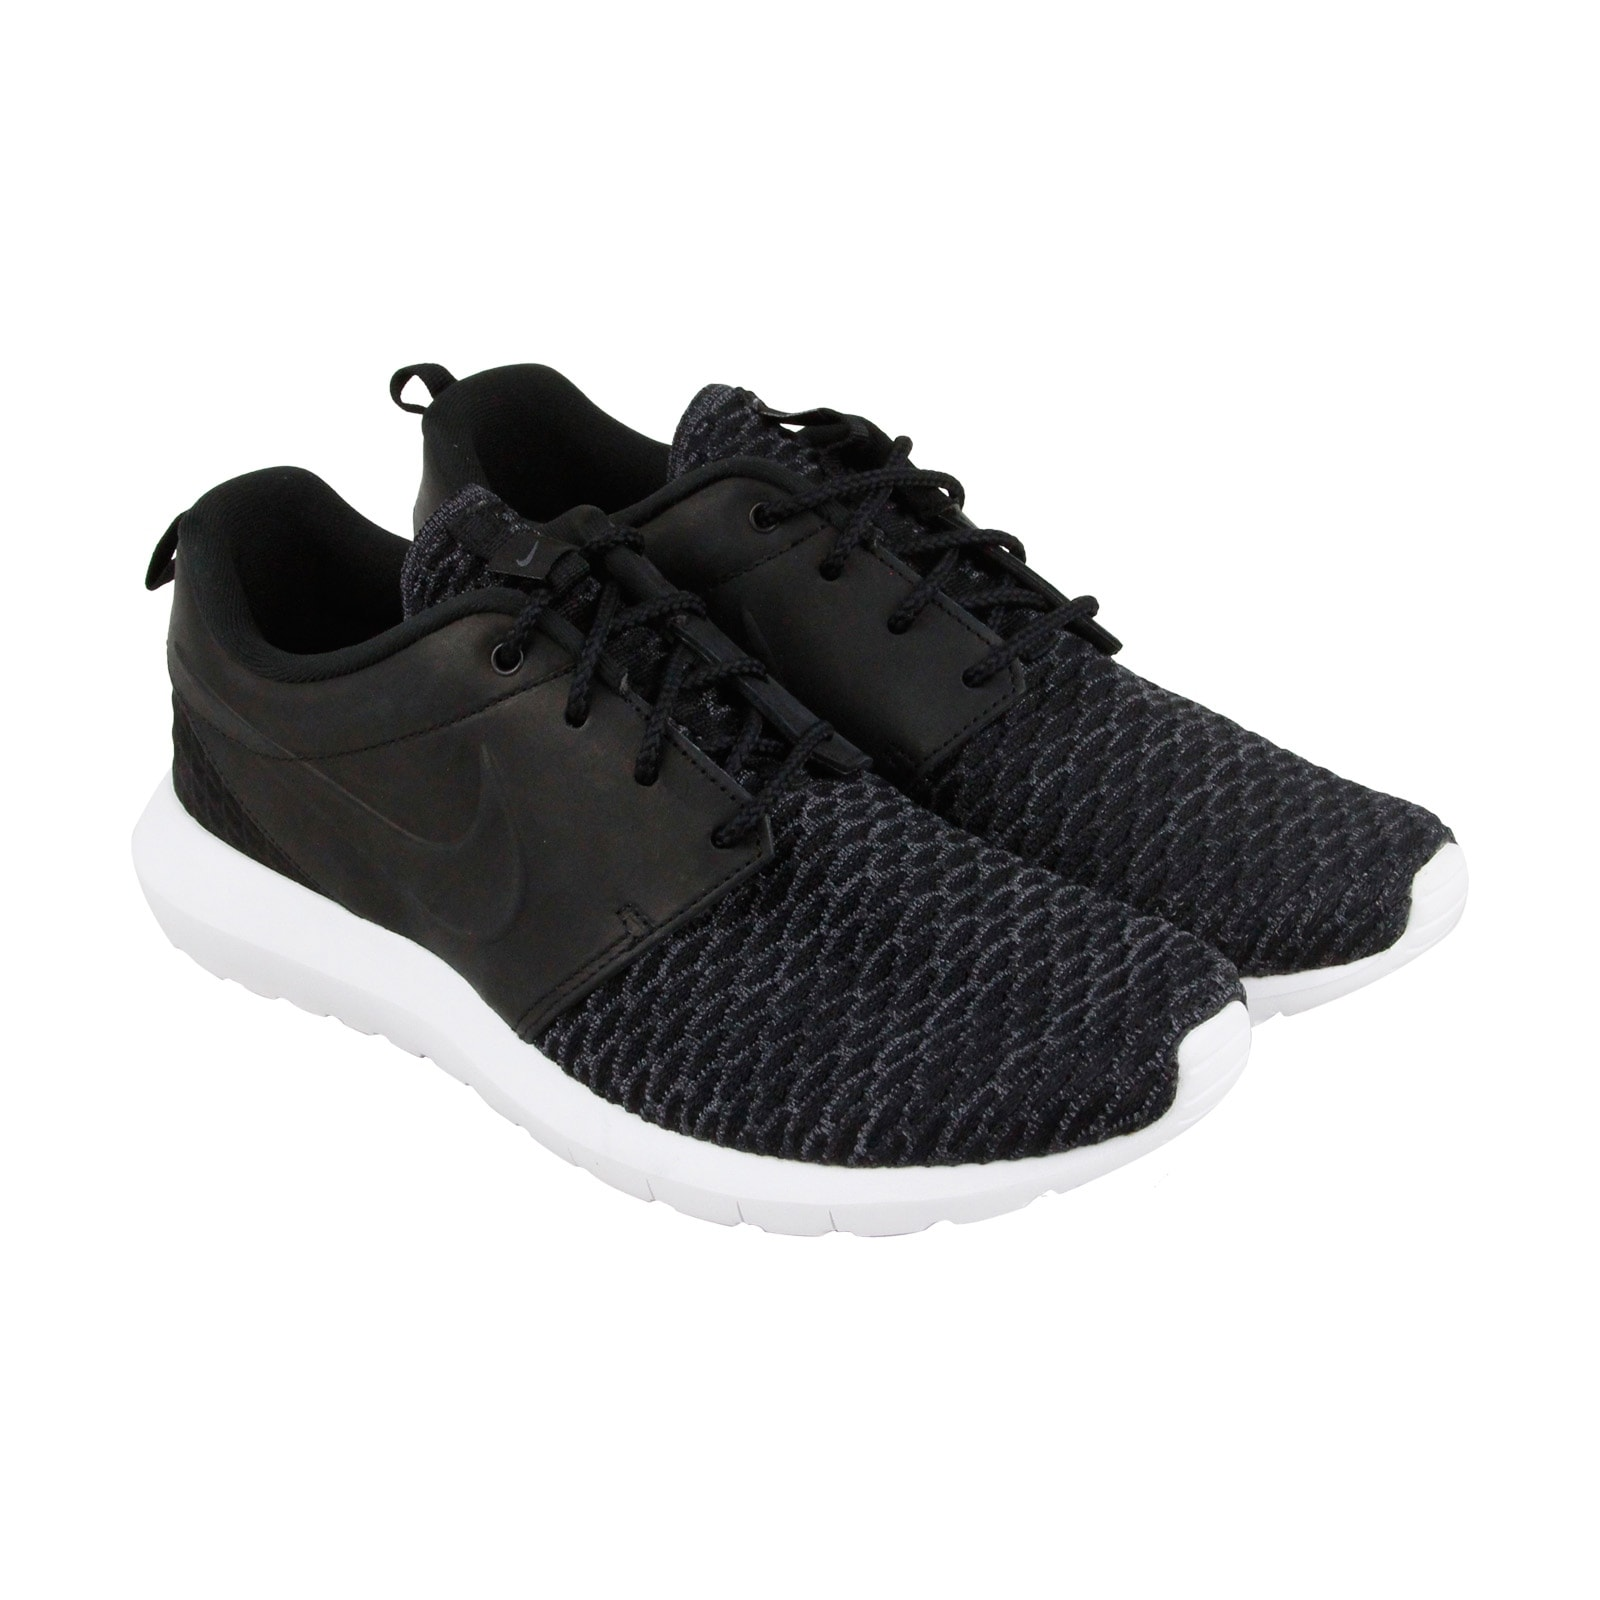 004cd51f0613a ... discount shop nike roshe nm flyknit prm mens black leather textile  athletic running shoes free shipping